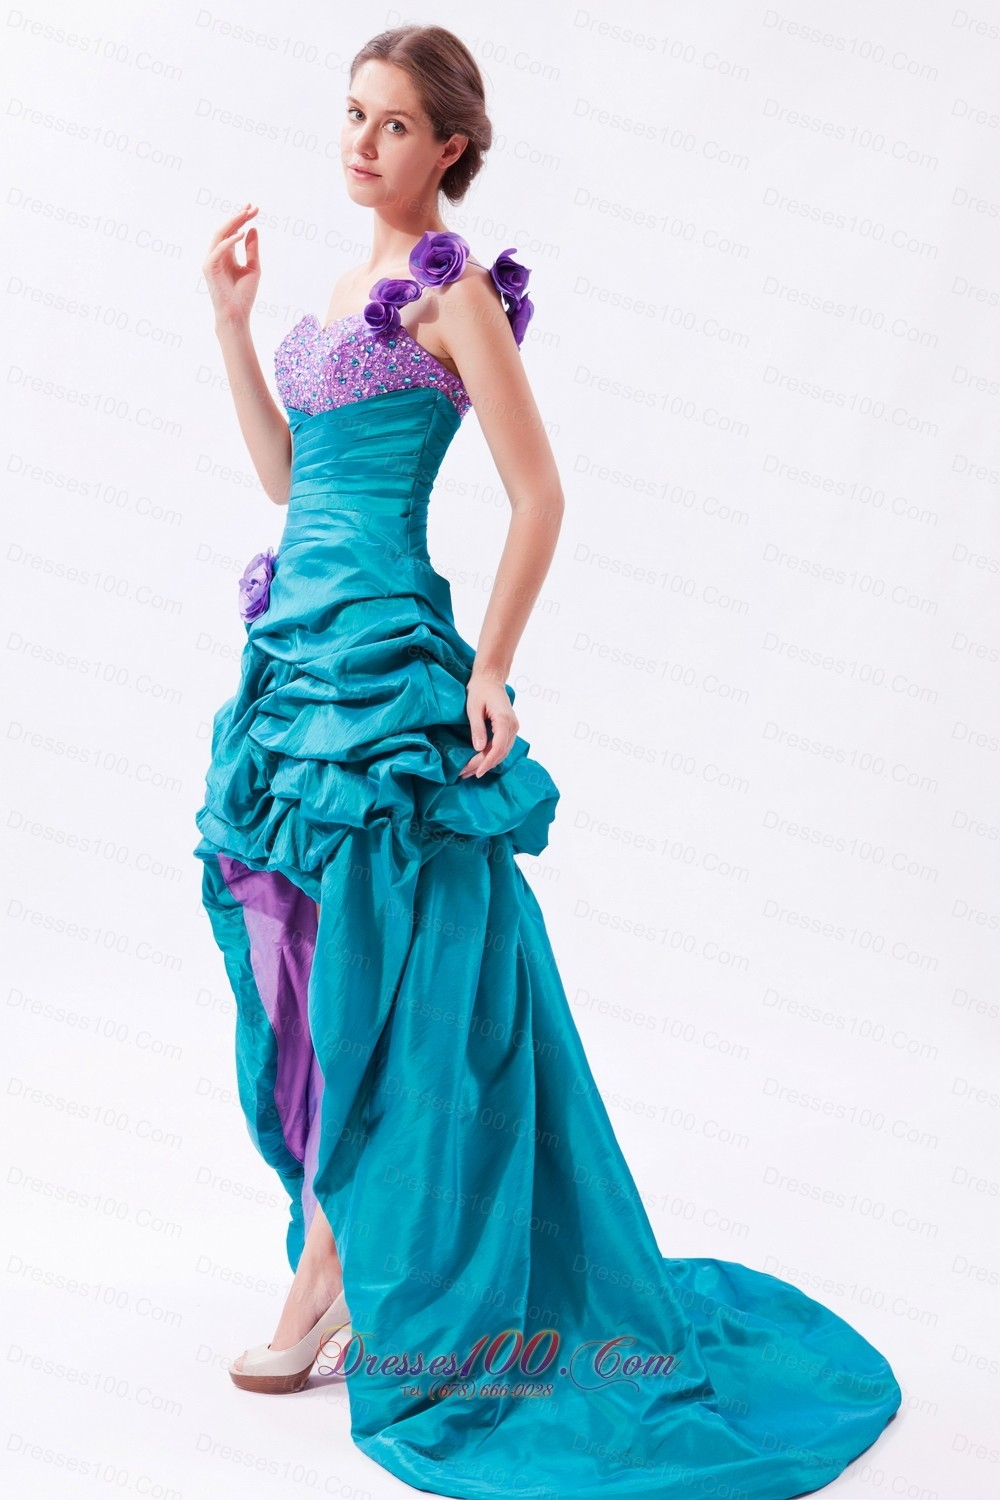 Teal and Lavender One Shoulder High-low Beading Prom Dress |Discount ...